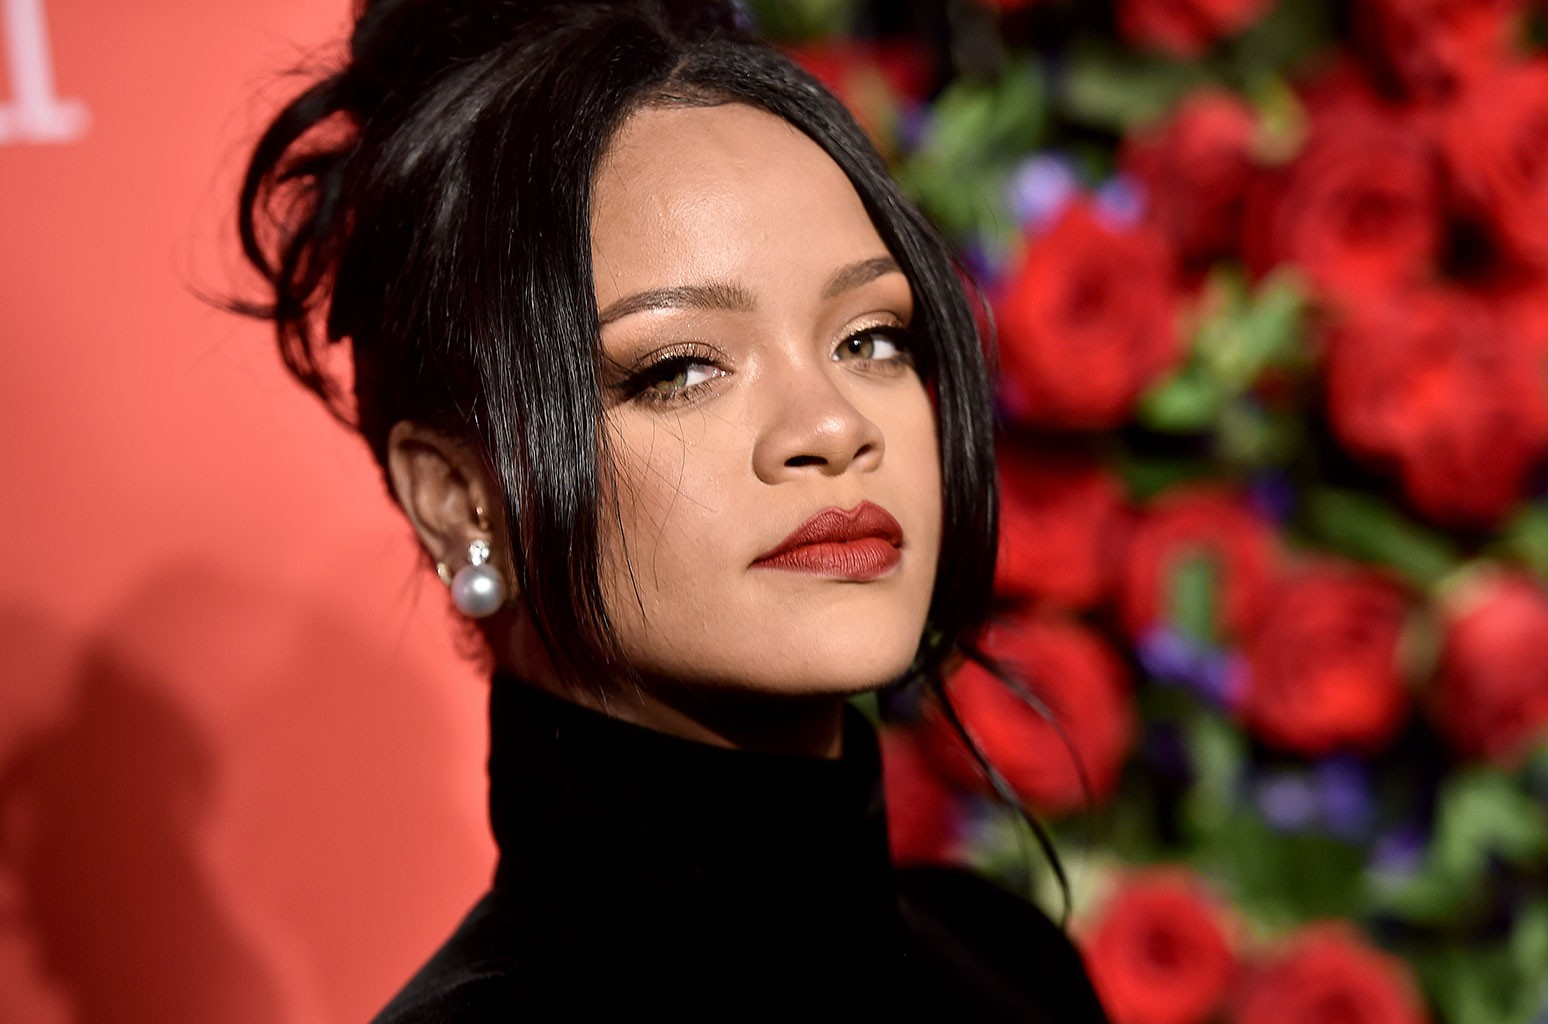 rihanna-drops-her-clothes-and-shows-out-for-the-gram-see-the-photo-that-has-fans-losing-their-minds